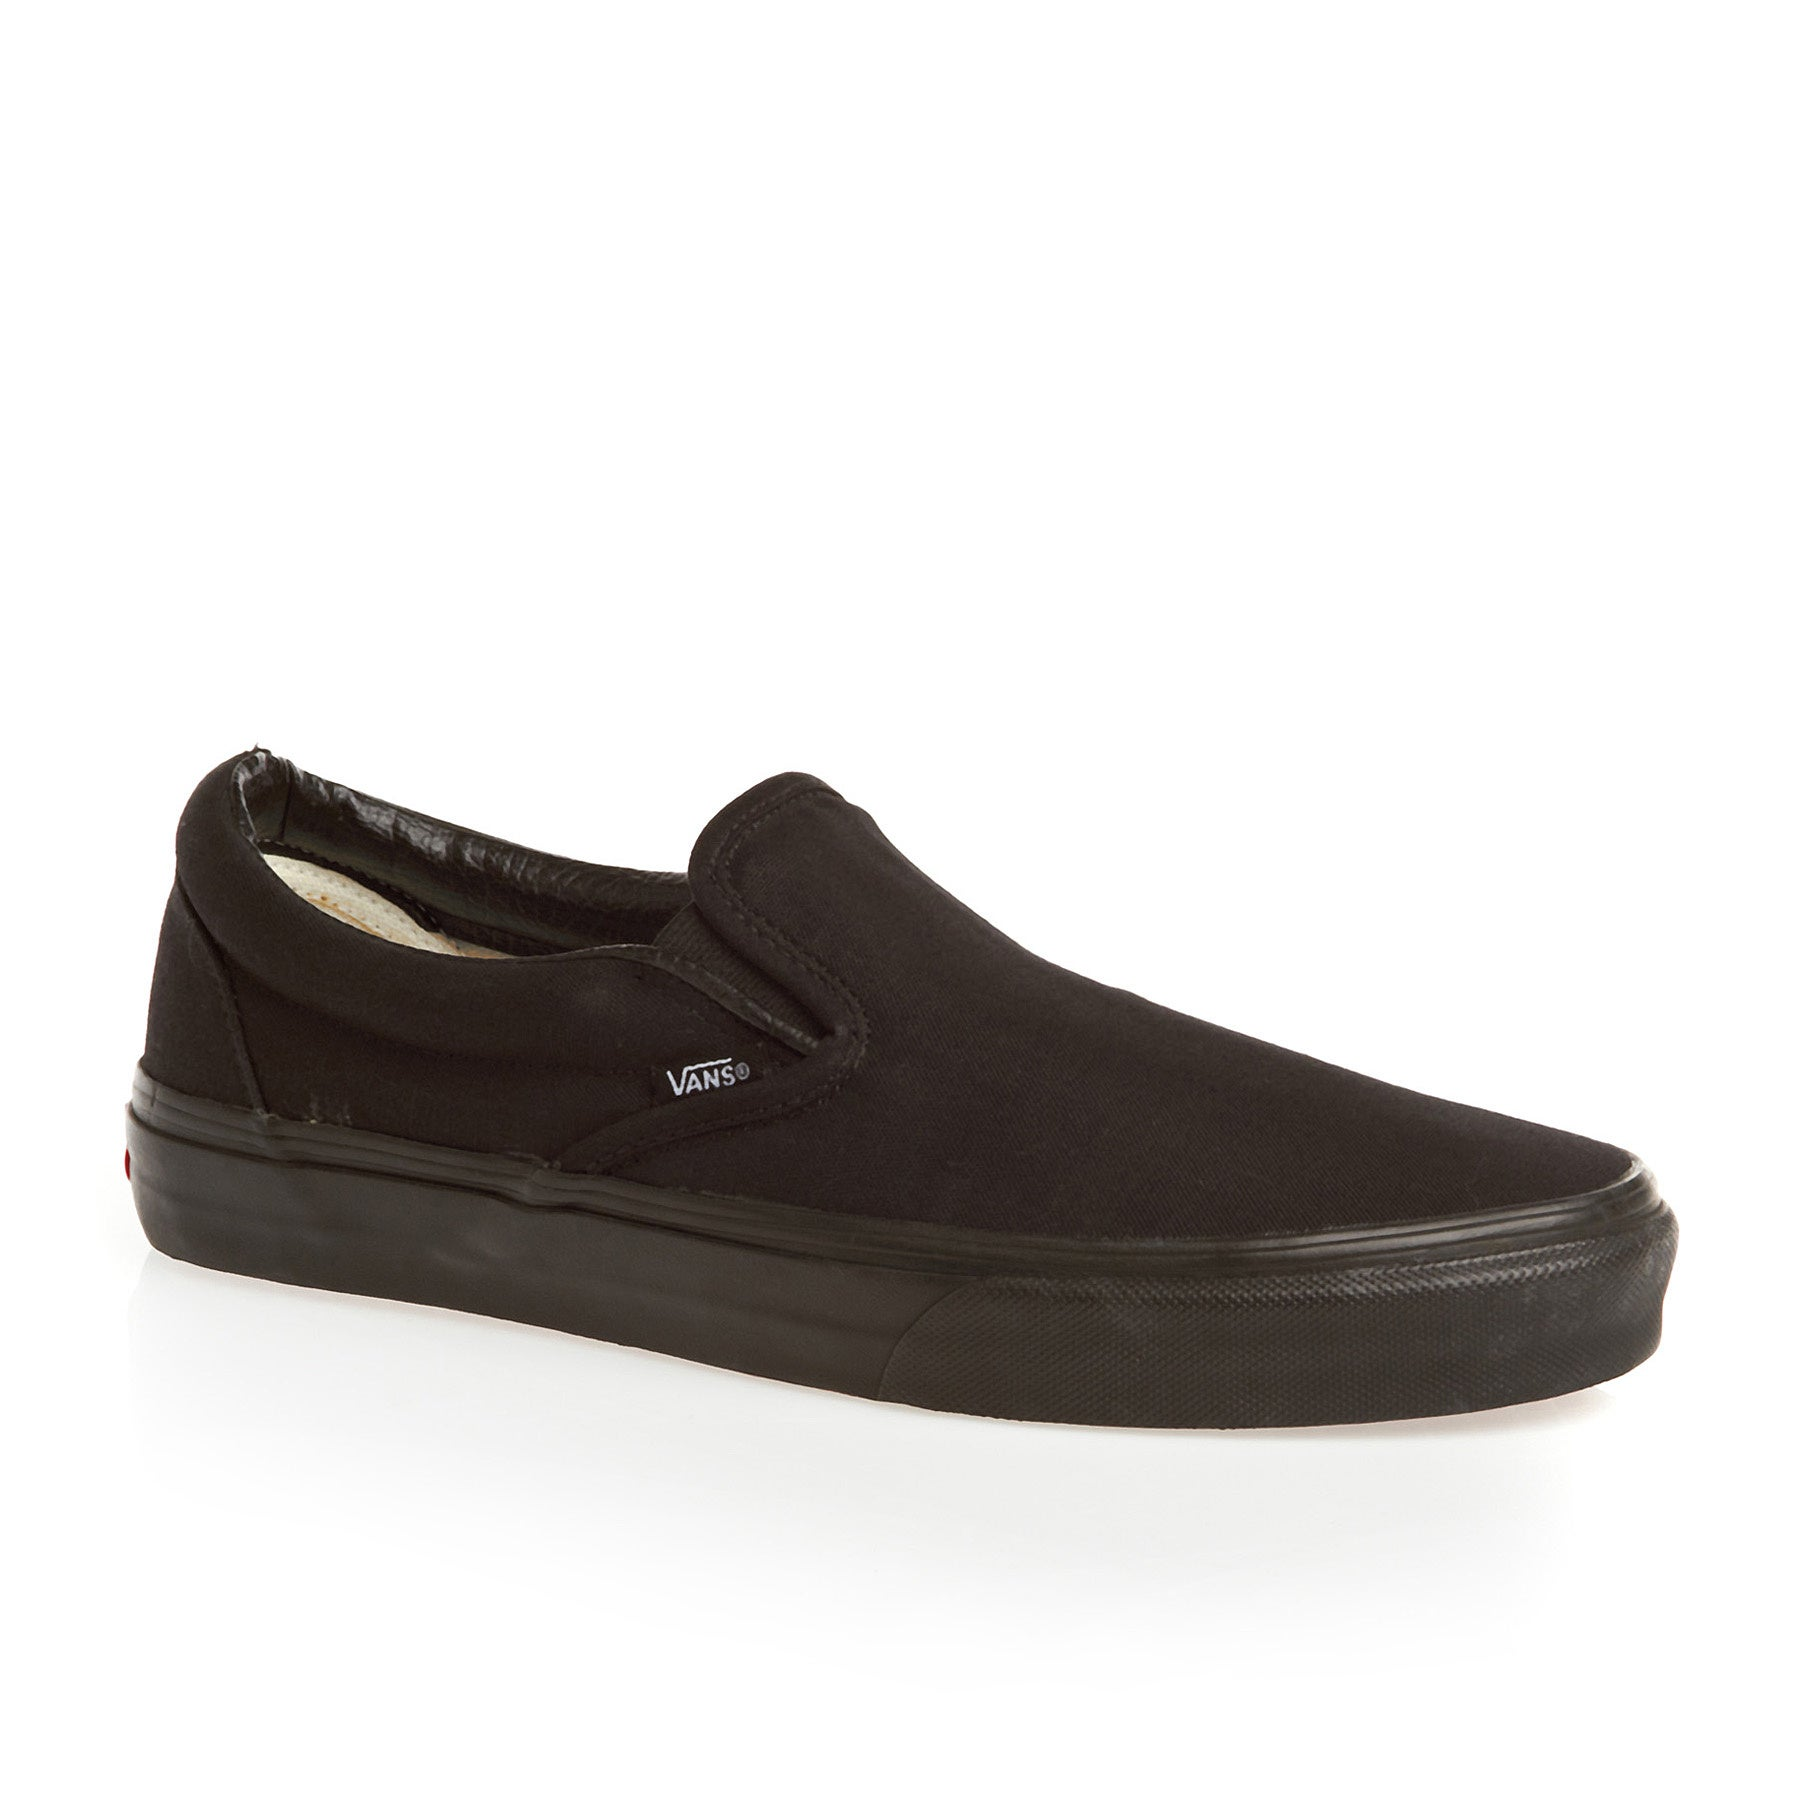 010254351fda Vans Classic Slip On Shoes available from Surfdome